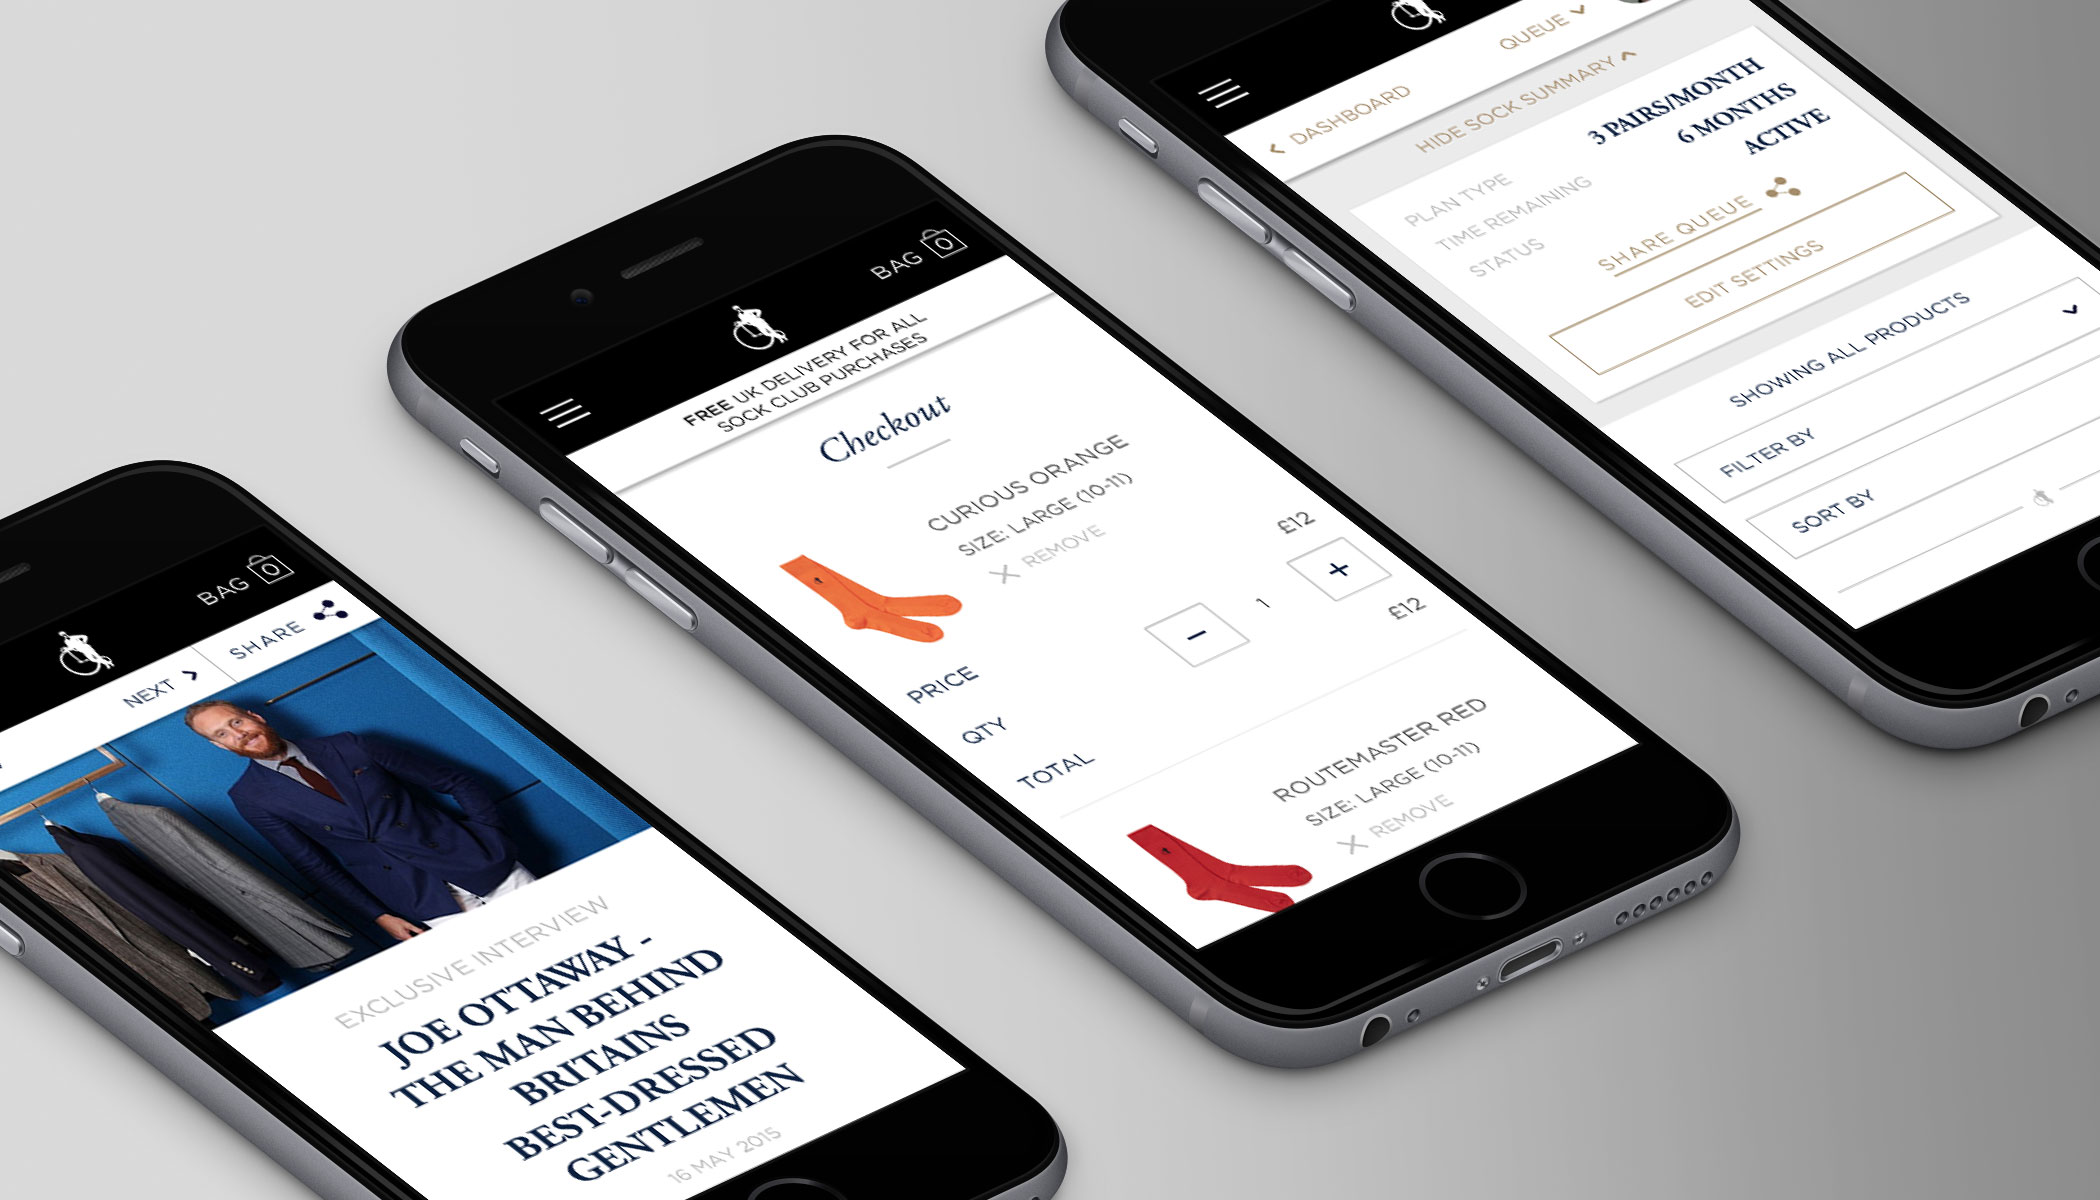 London Sock Company e-commerce website shown on mobile phones